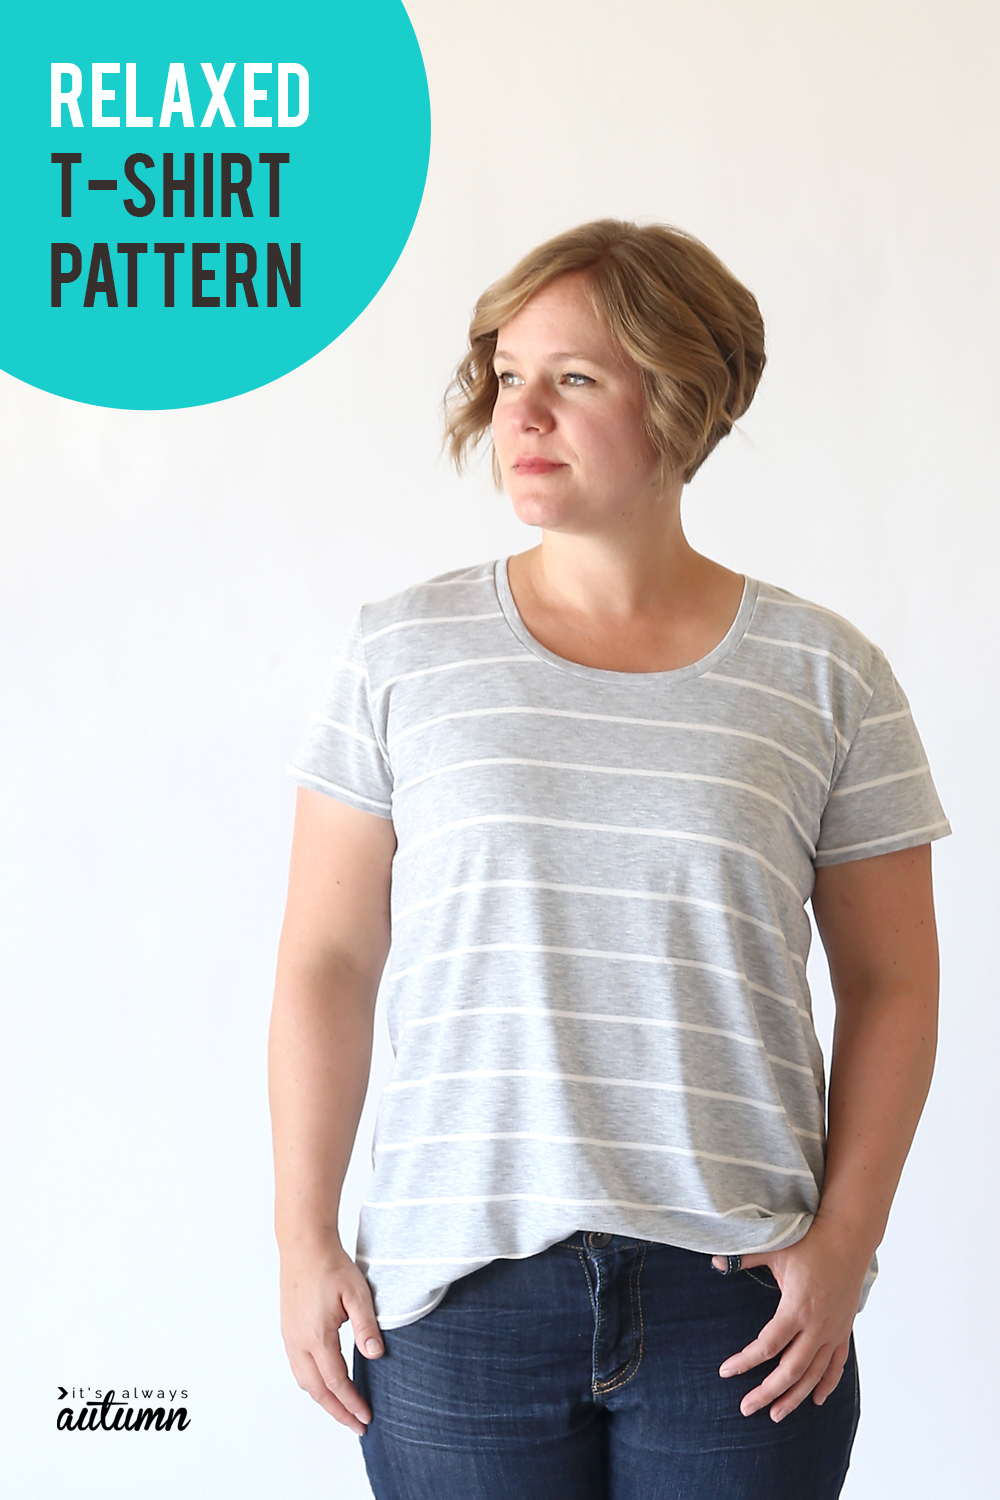 Learn how to sew a cute relaxed fit t-shirt with this sewing pattern and tutorial.